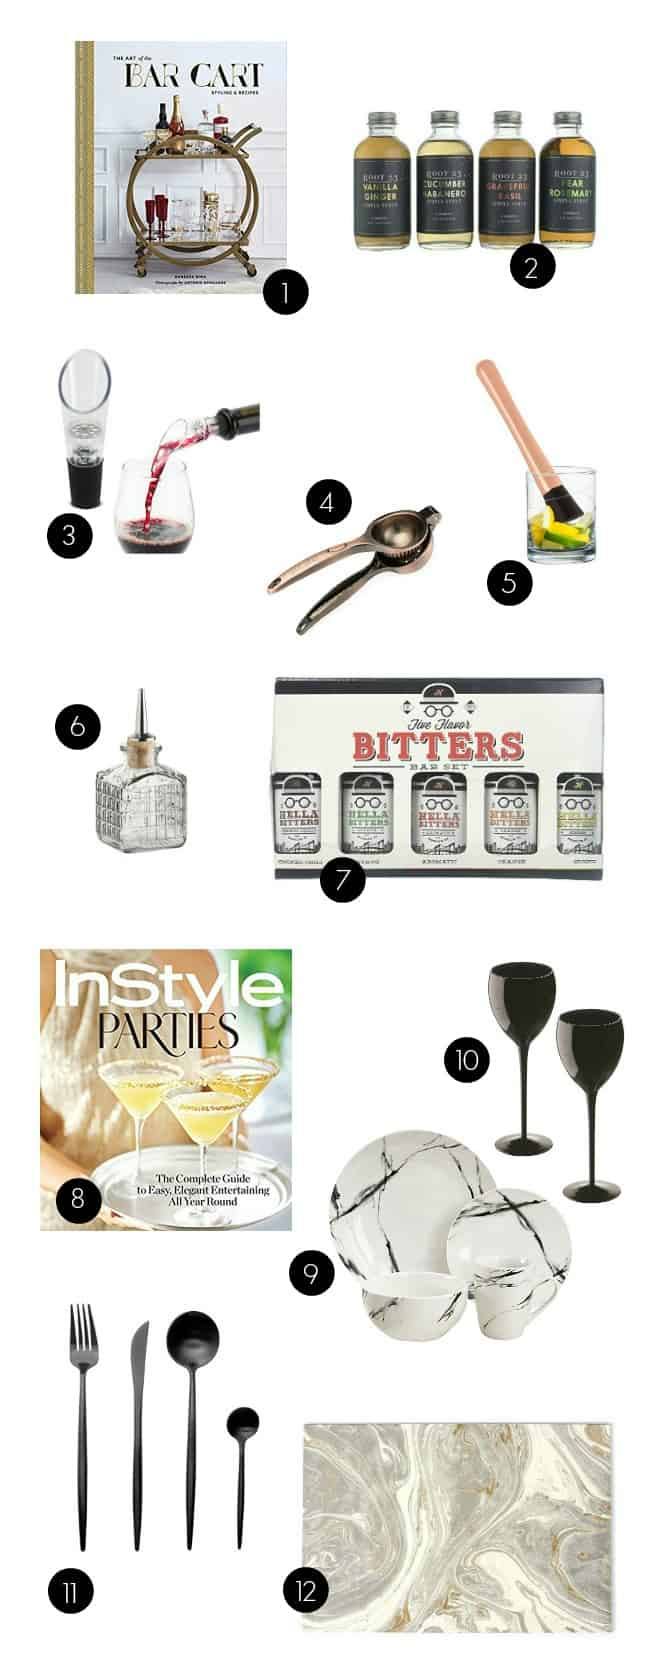 Find great Gifts for Entertaining right here. I've got bar and tabletop picks that will have you hosting in style! #gifts #giftgiving #entertaining